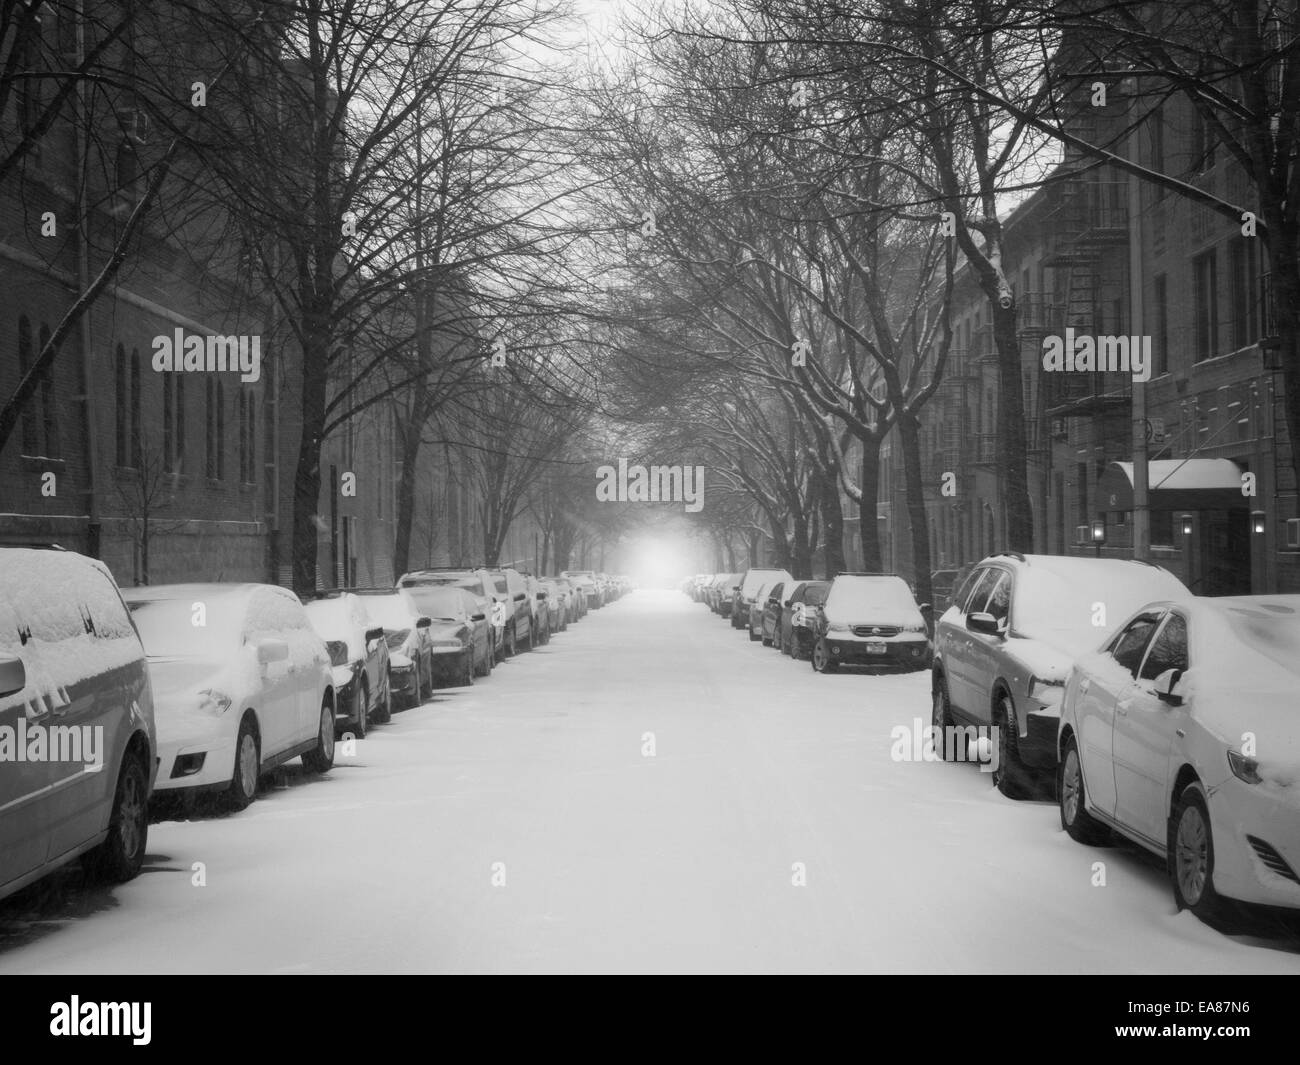 Brooklyn Street view in snowstorm. - Stock Image